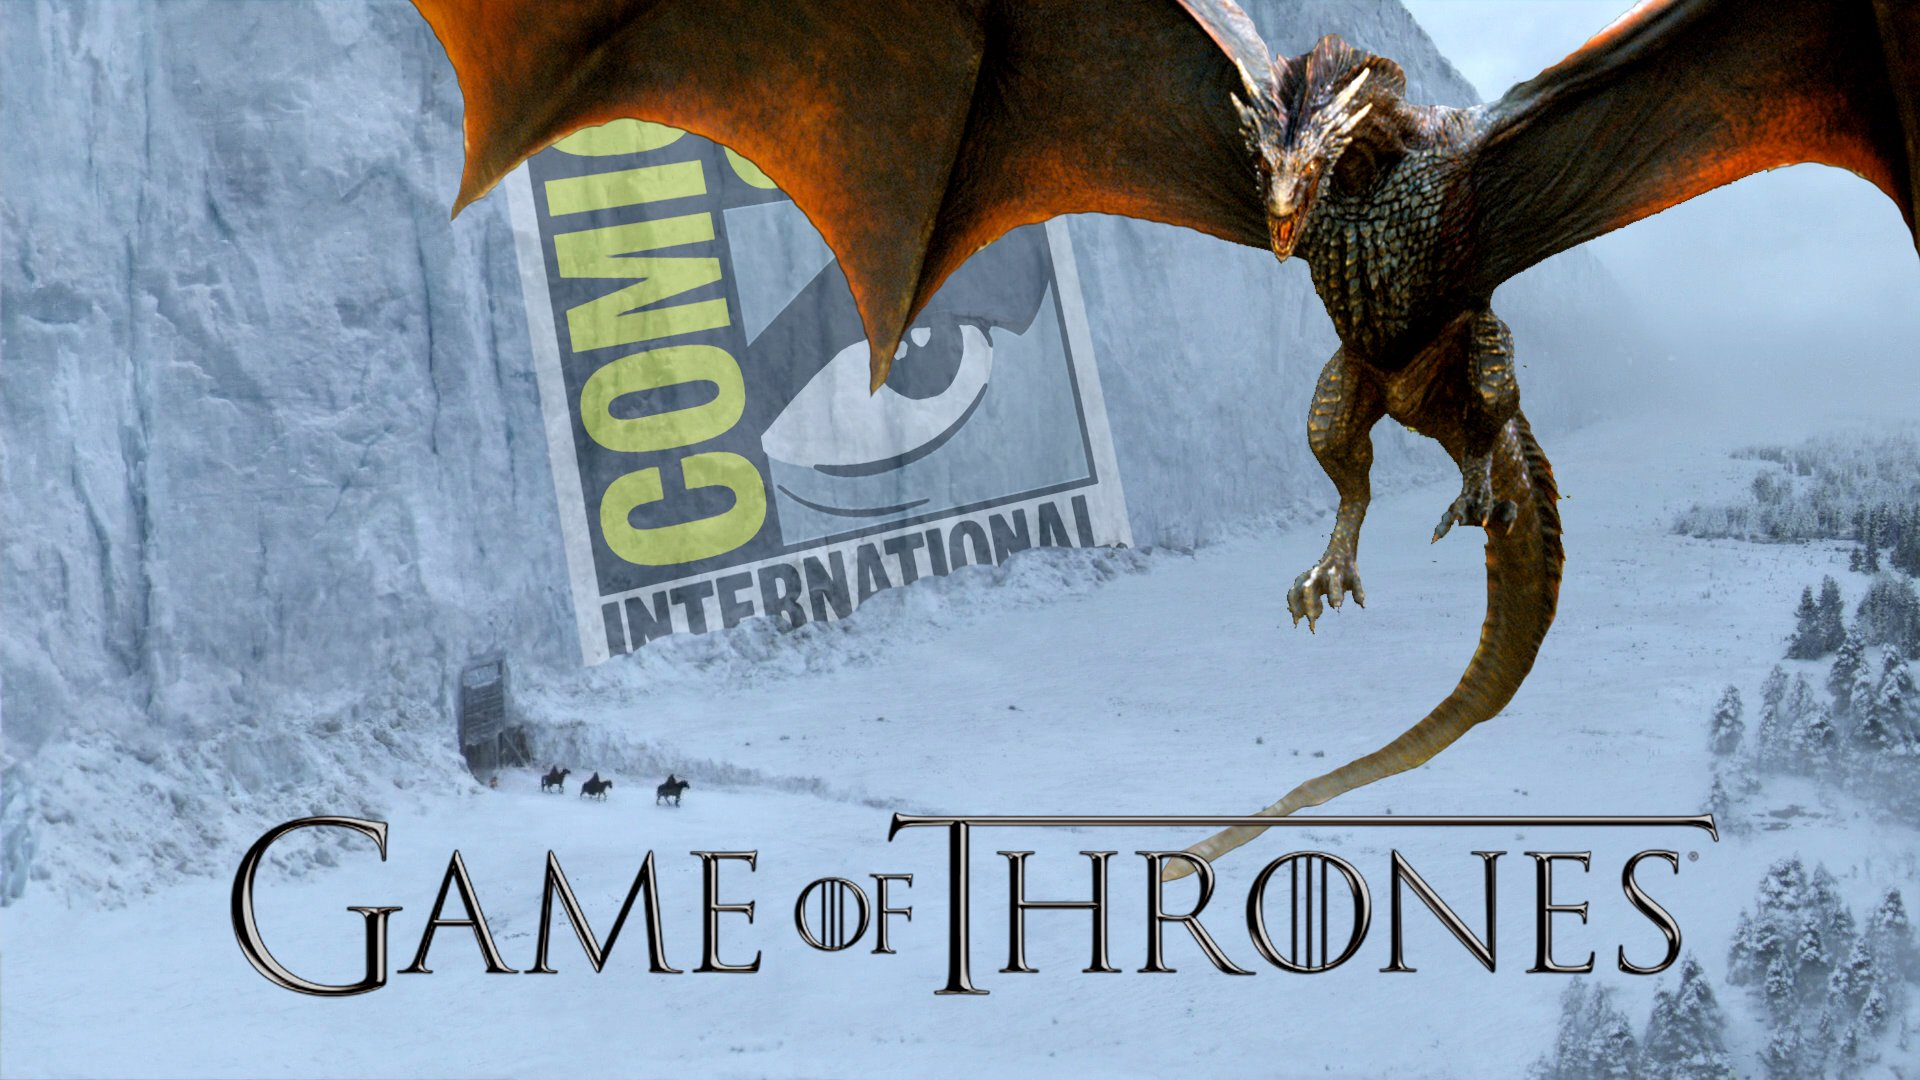 Winter has arrived with HBO's interactive Game of Thrones SDCC Environment. We've a peek inside the attraction, open to the public throughout Comic-Con.